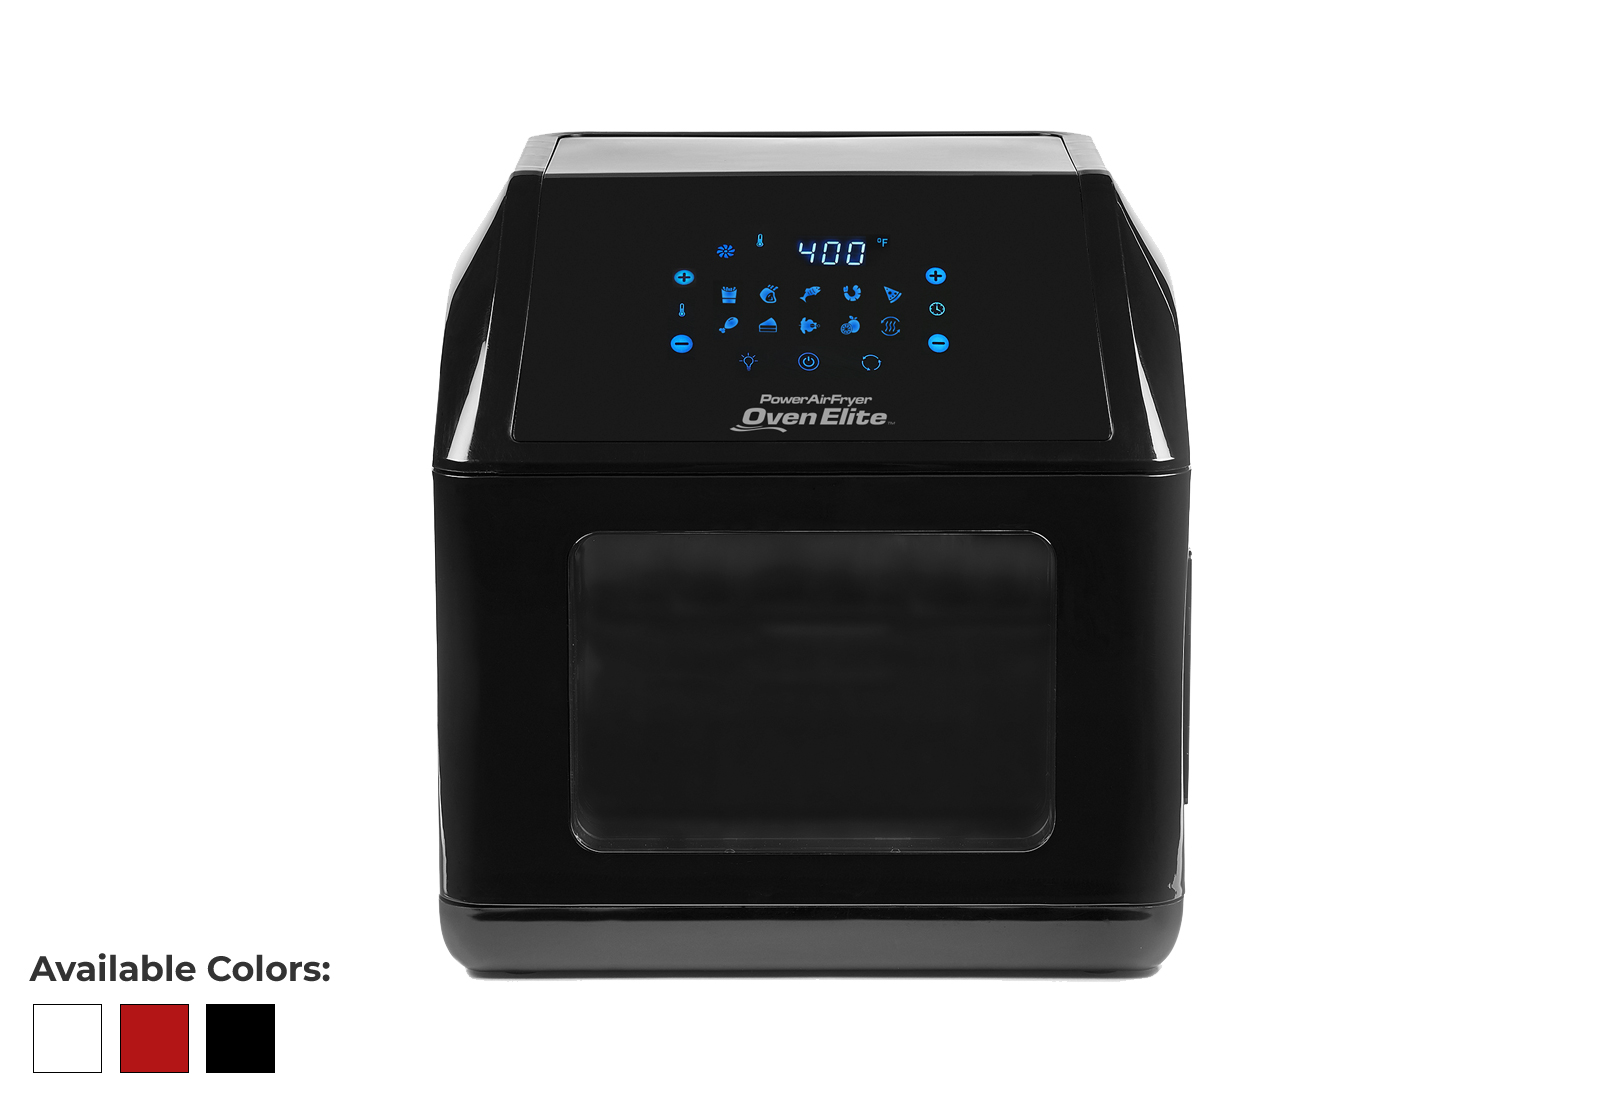 Power Airfryer Oven Elite Product Image